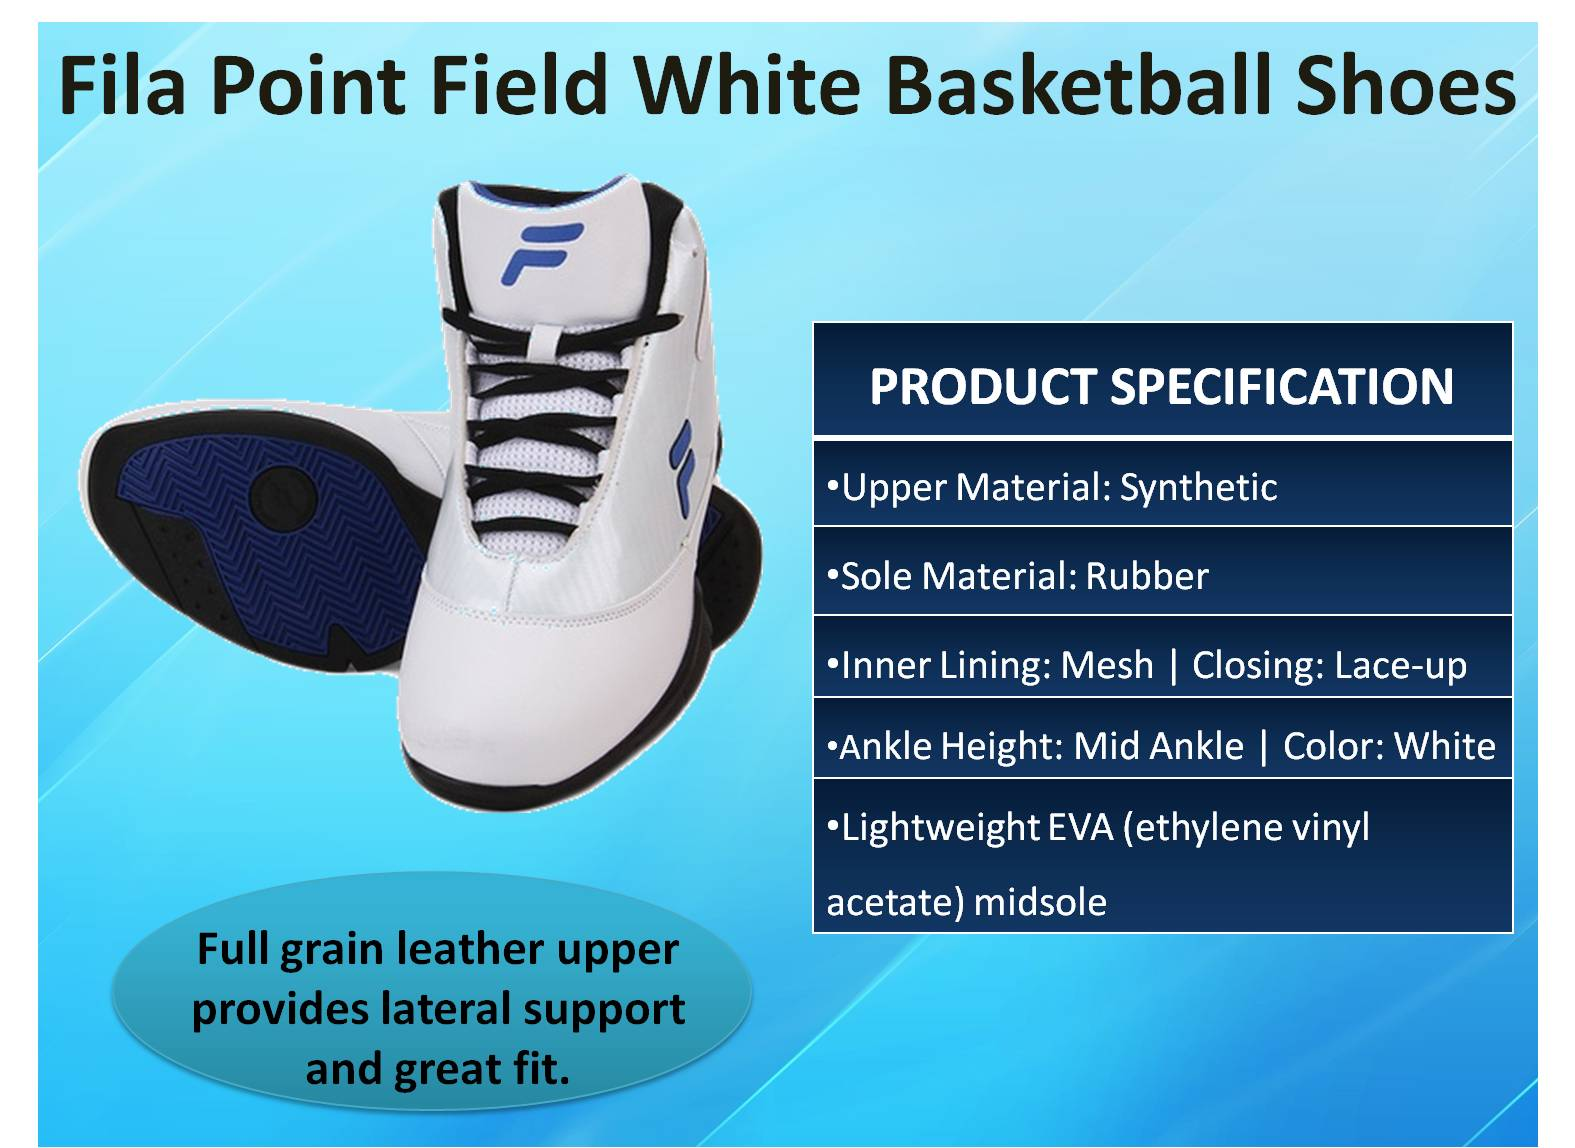 Fila Point Field White Basketball Shoes